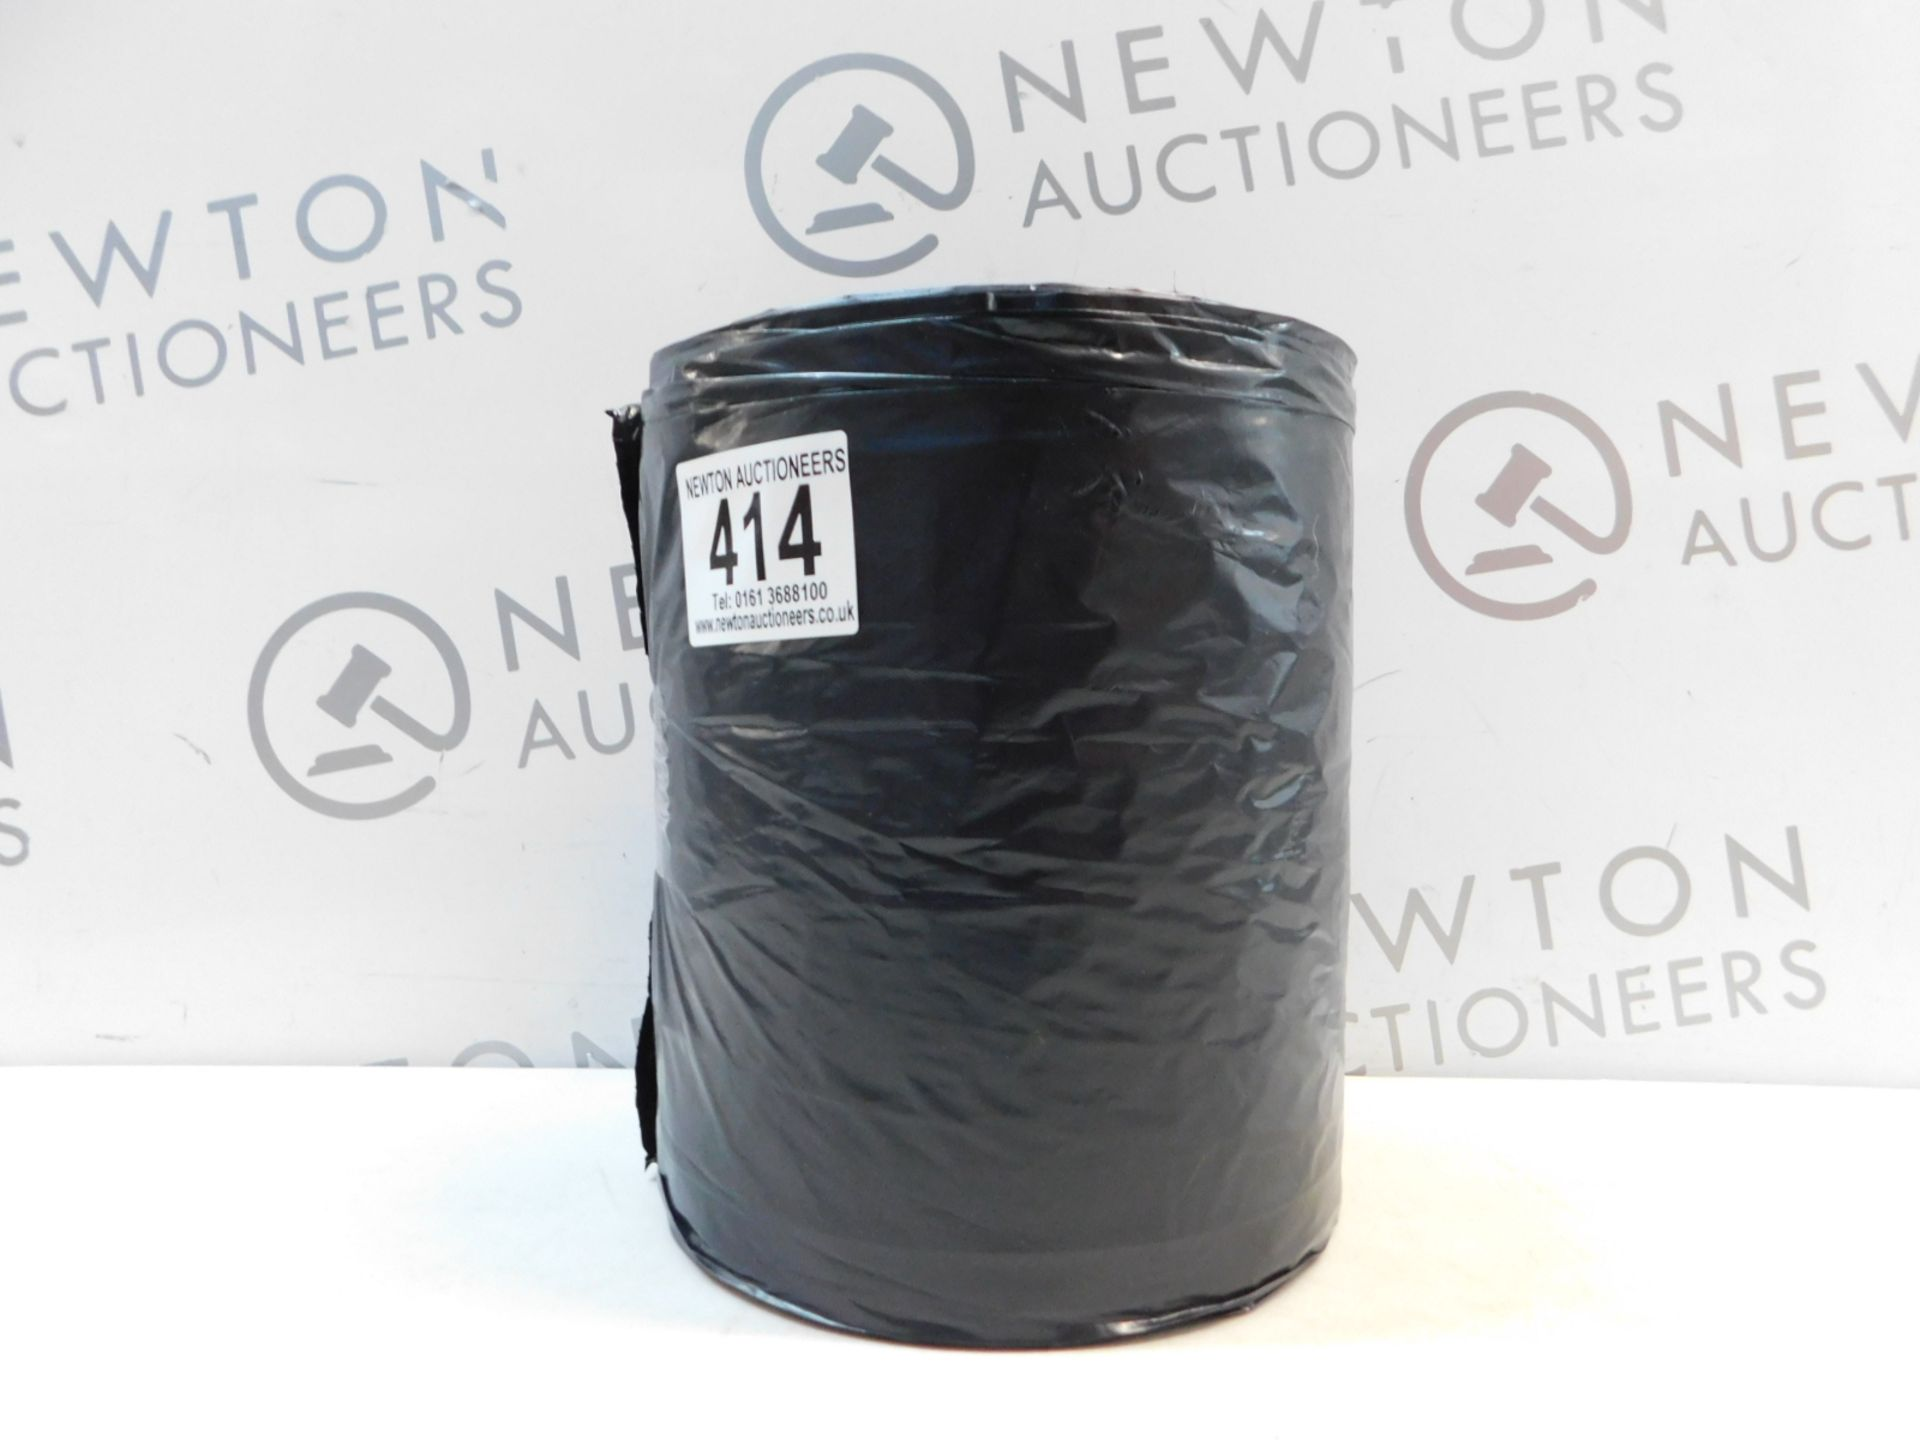 Lot 414 - 1 LARGE ROLL OF BLACK KITCHEN BAGS RRP £12.99